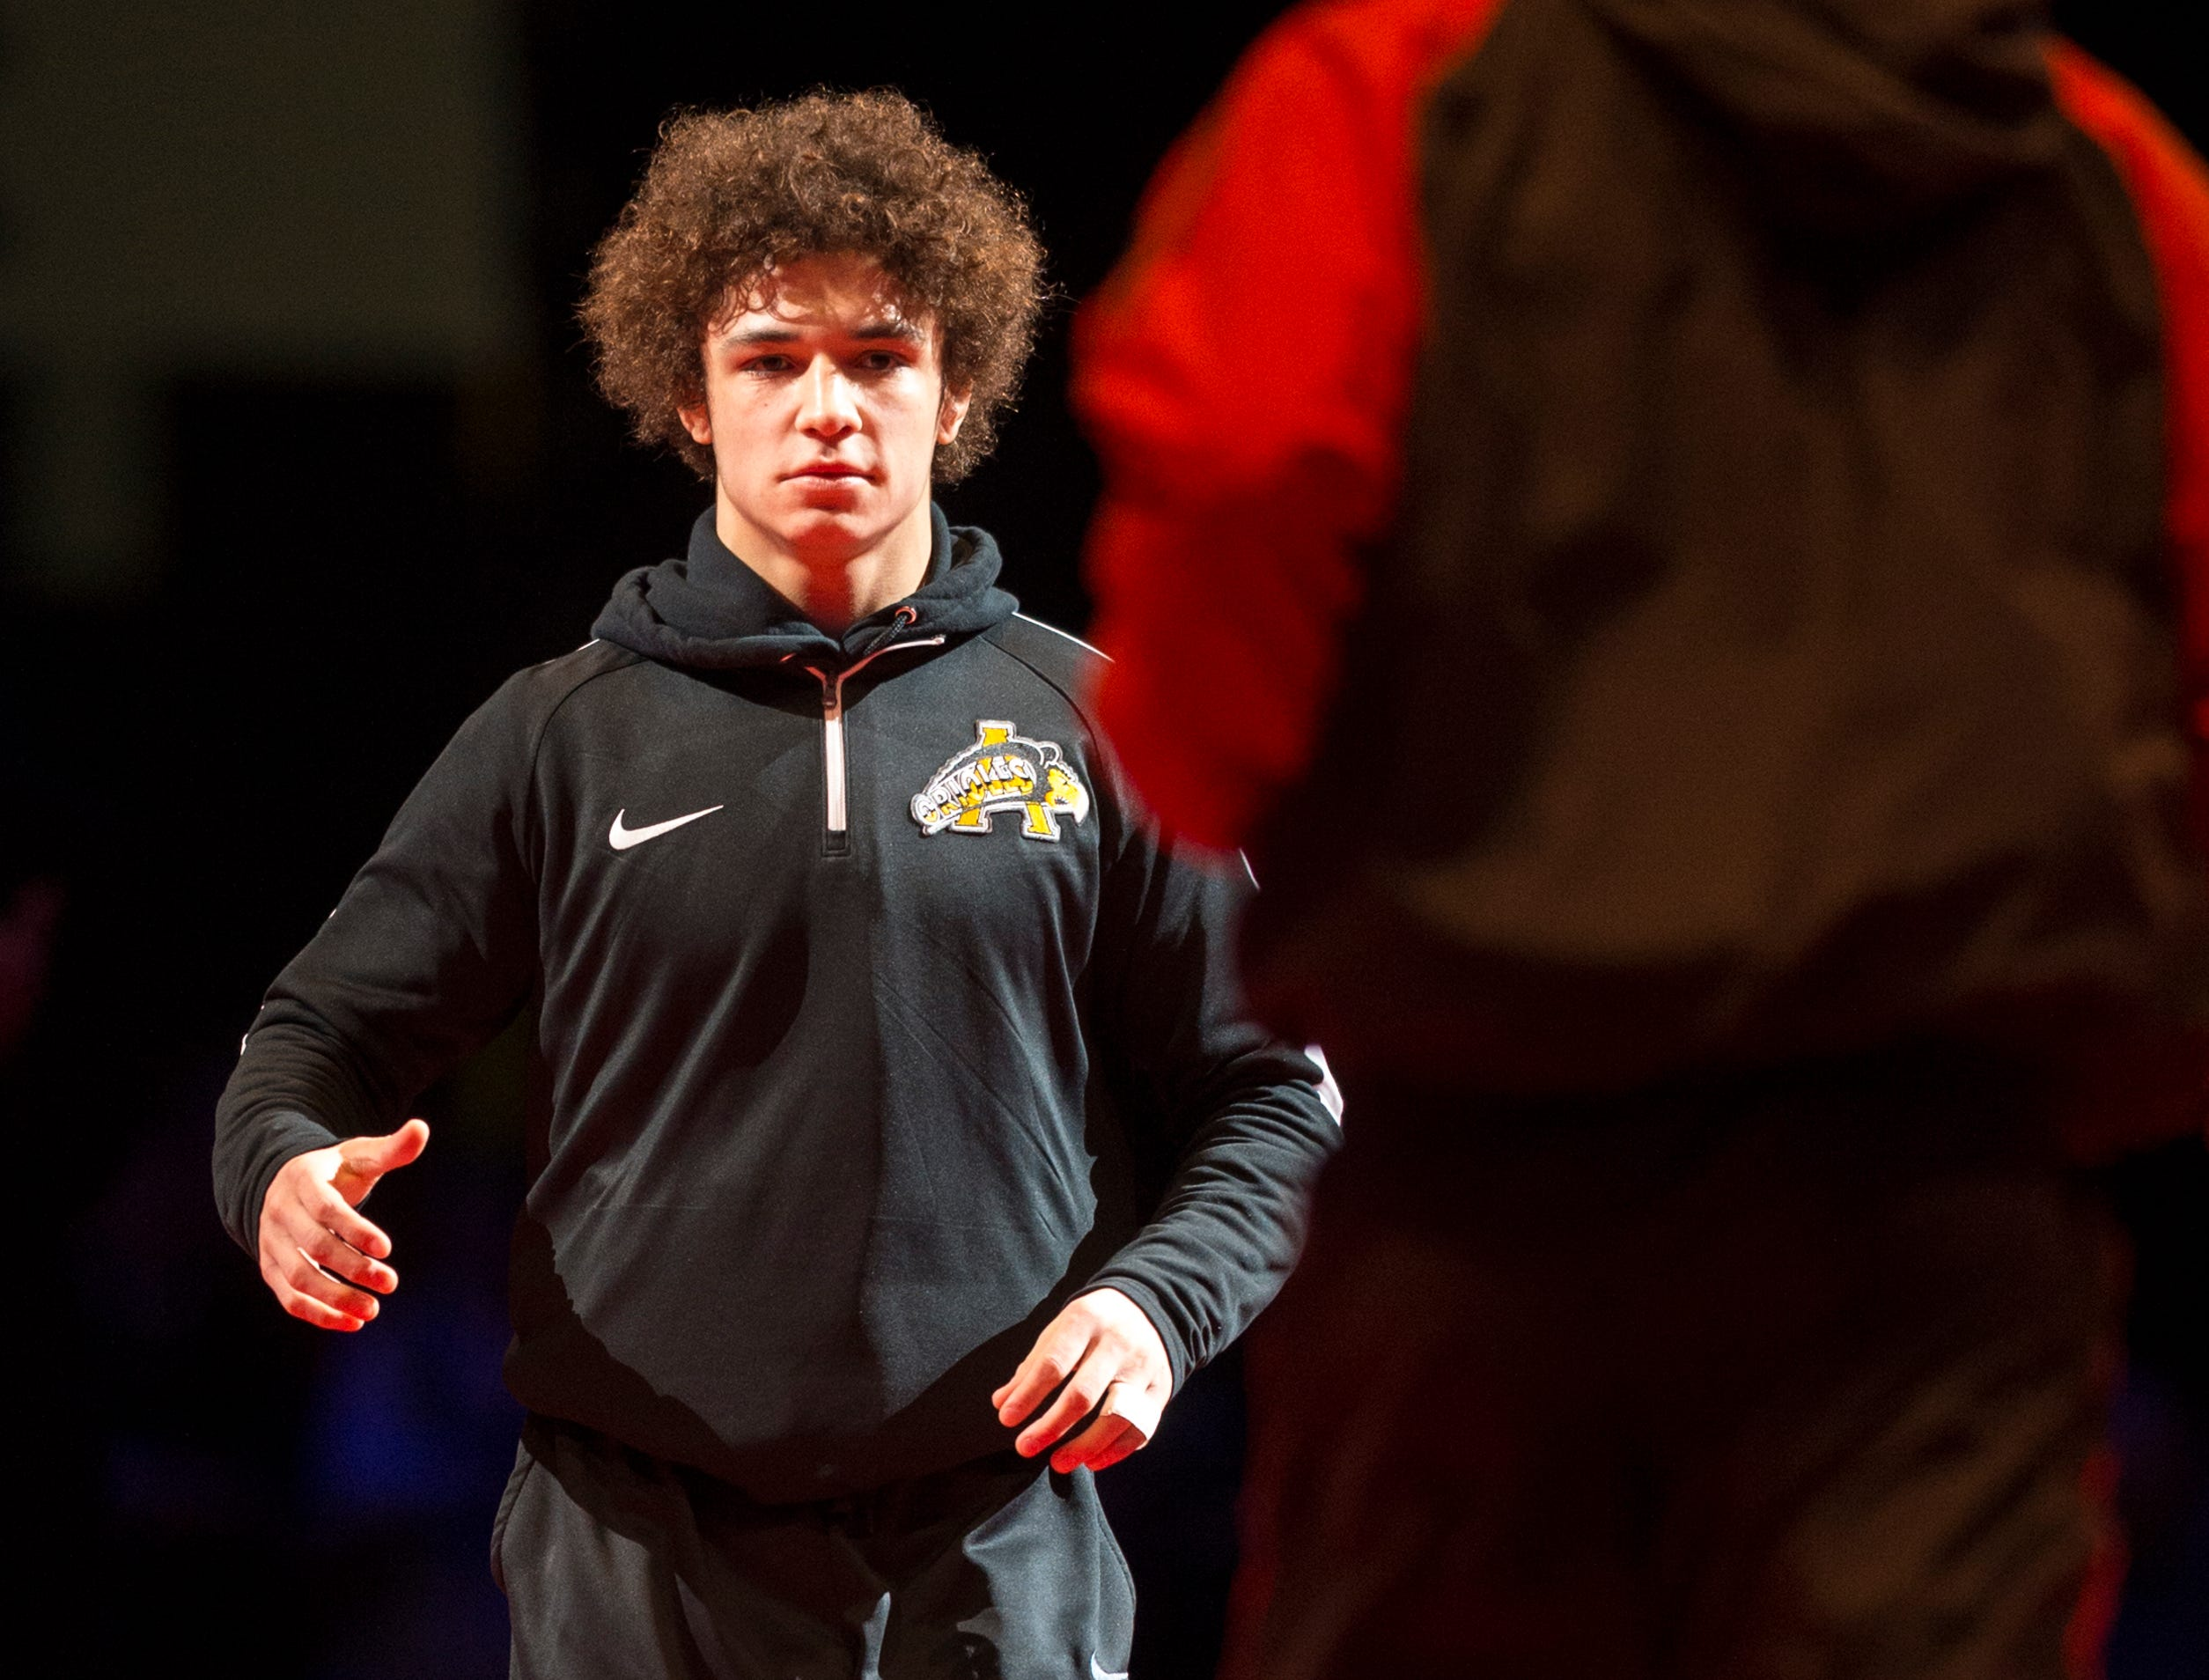 Avon High Schoo's Asa Garcia is introduced during the championship round of the 2018 IHSAA Wrestling State Tournament, Saturday, February 18, 2018, at Bankers Life Fieldhouse in Indianapolis.